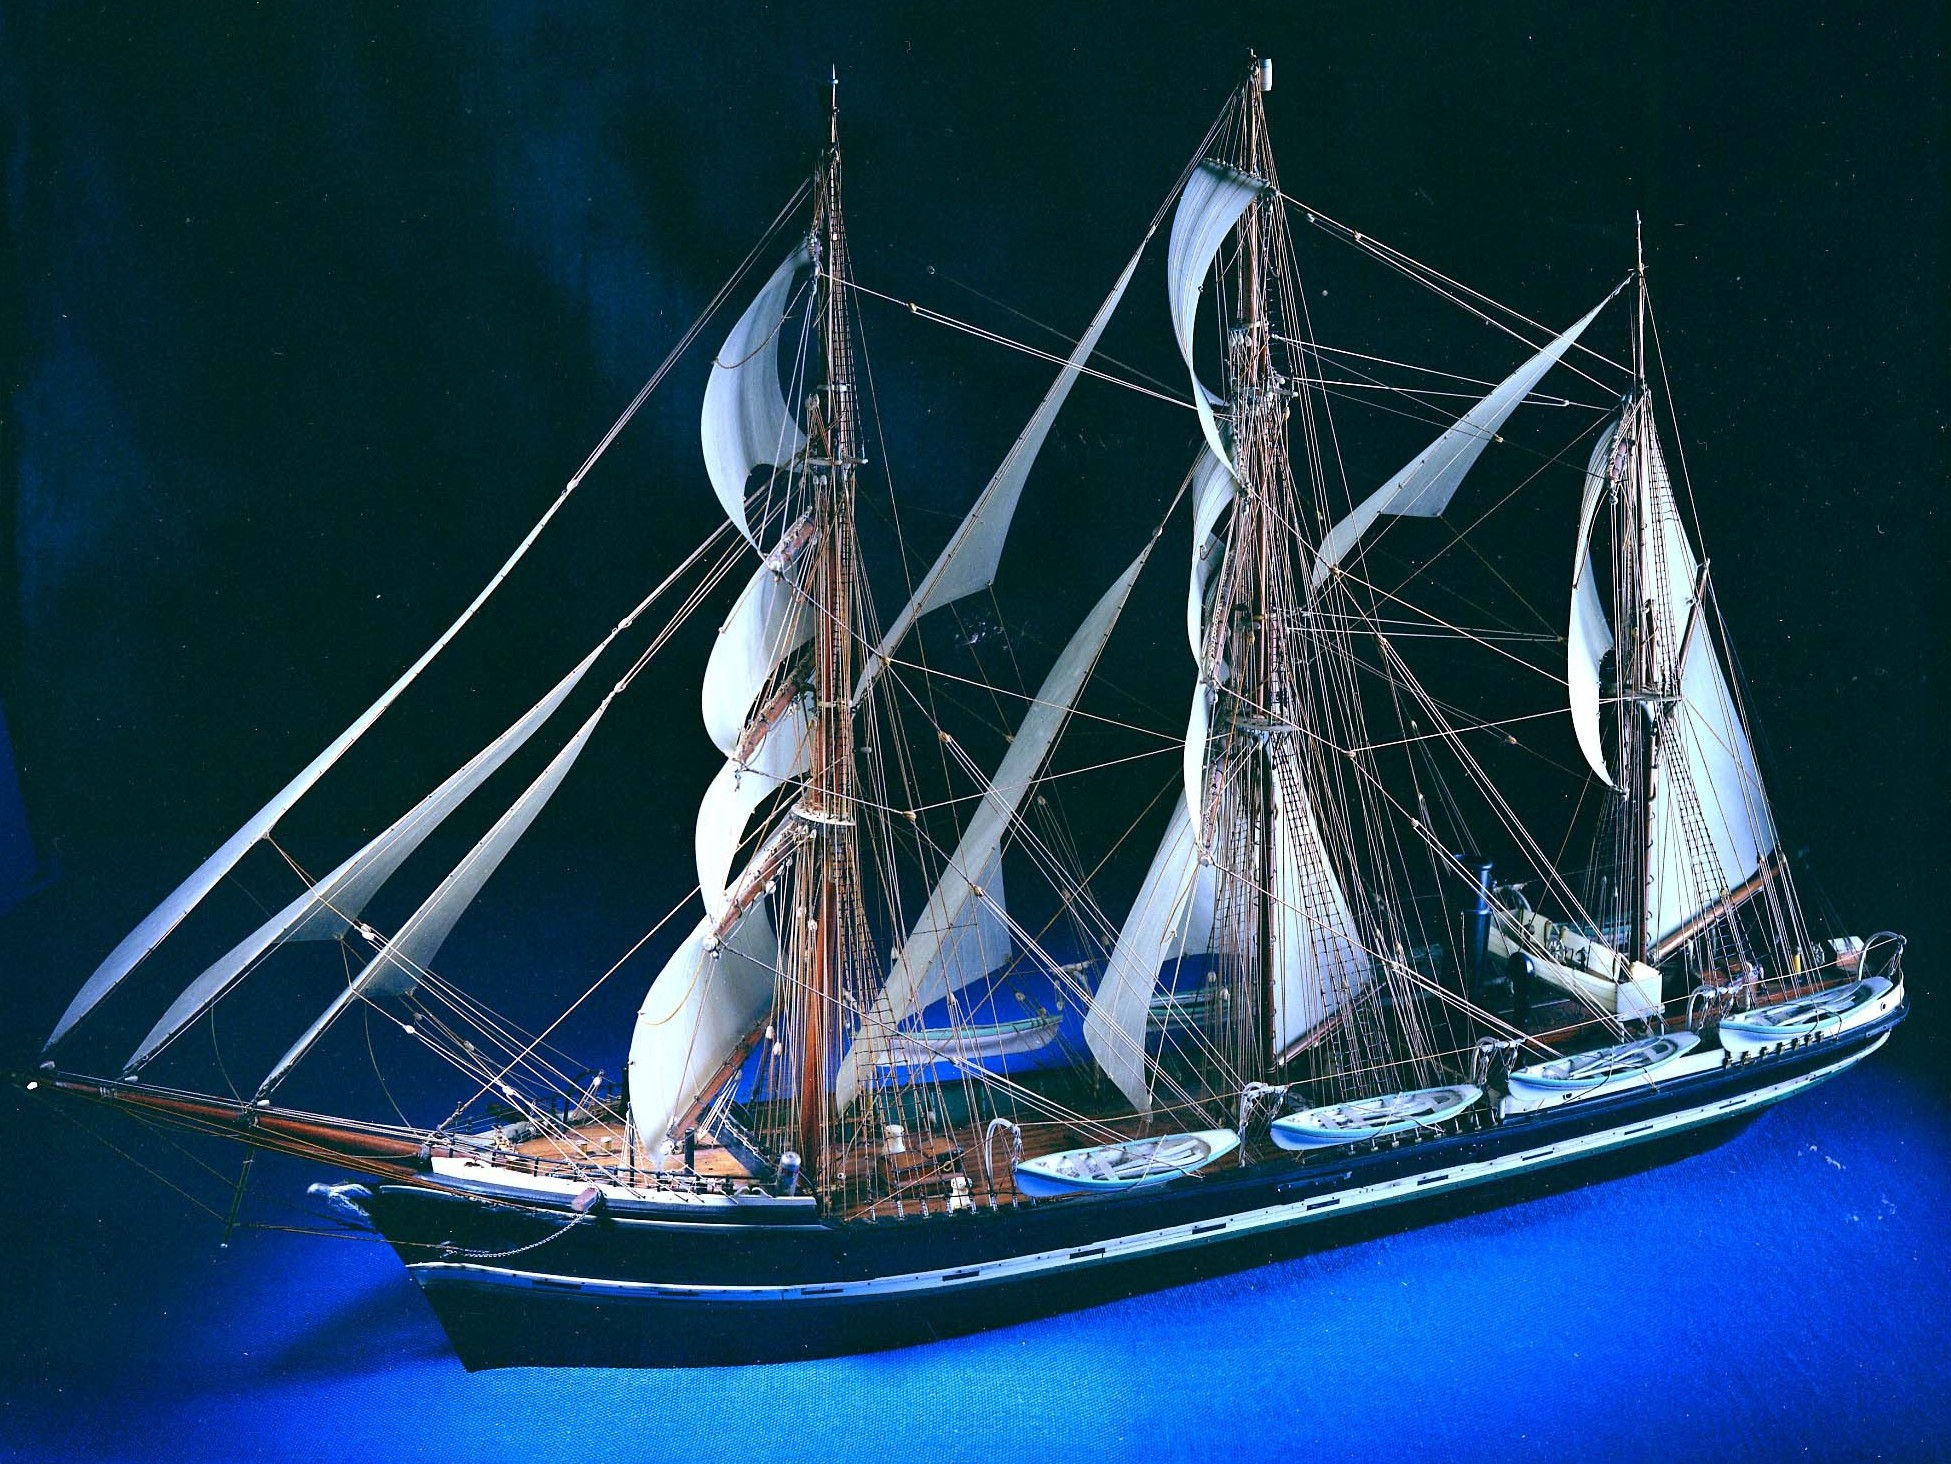 A contemporary model of the Hope, the Arctic whaler on which Doyle served as ship's surgeon in 1880